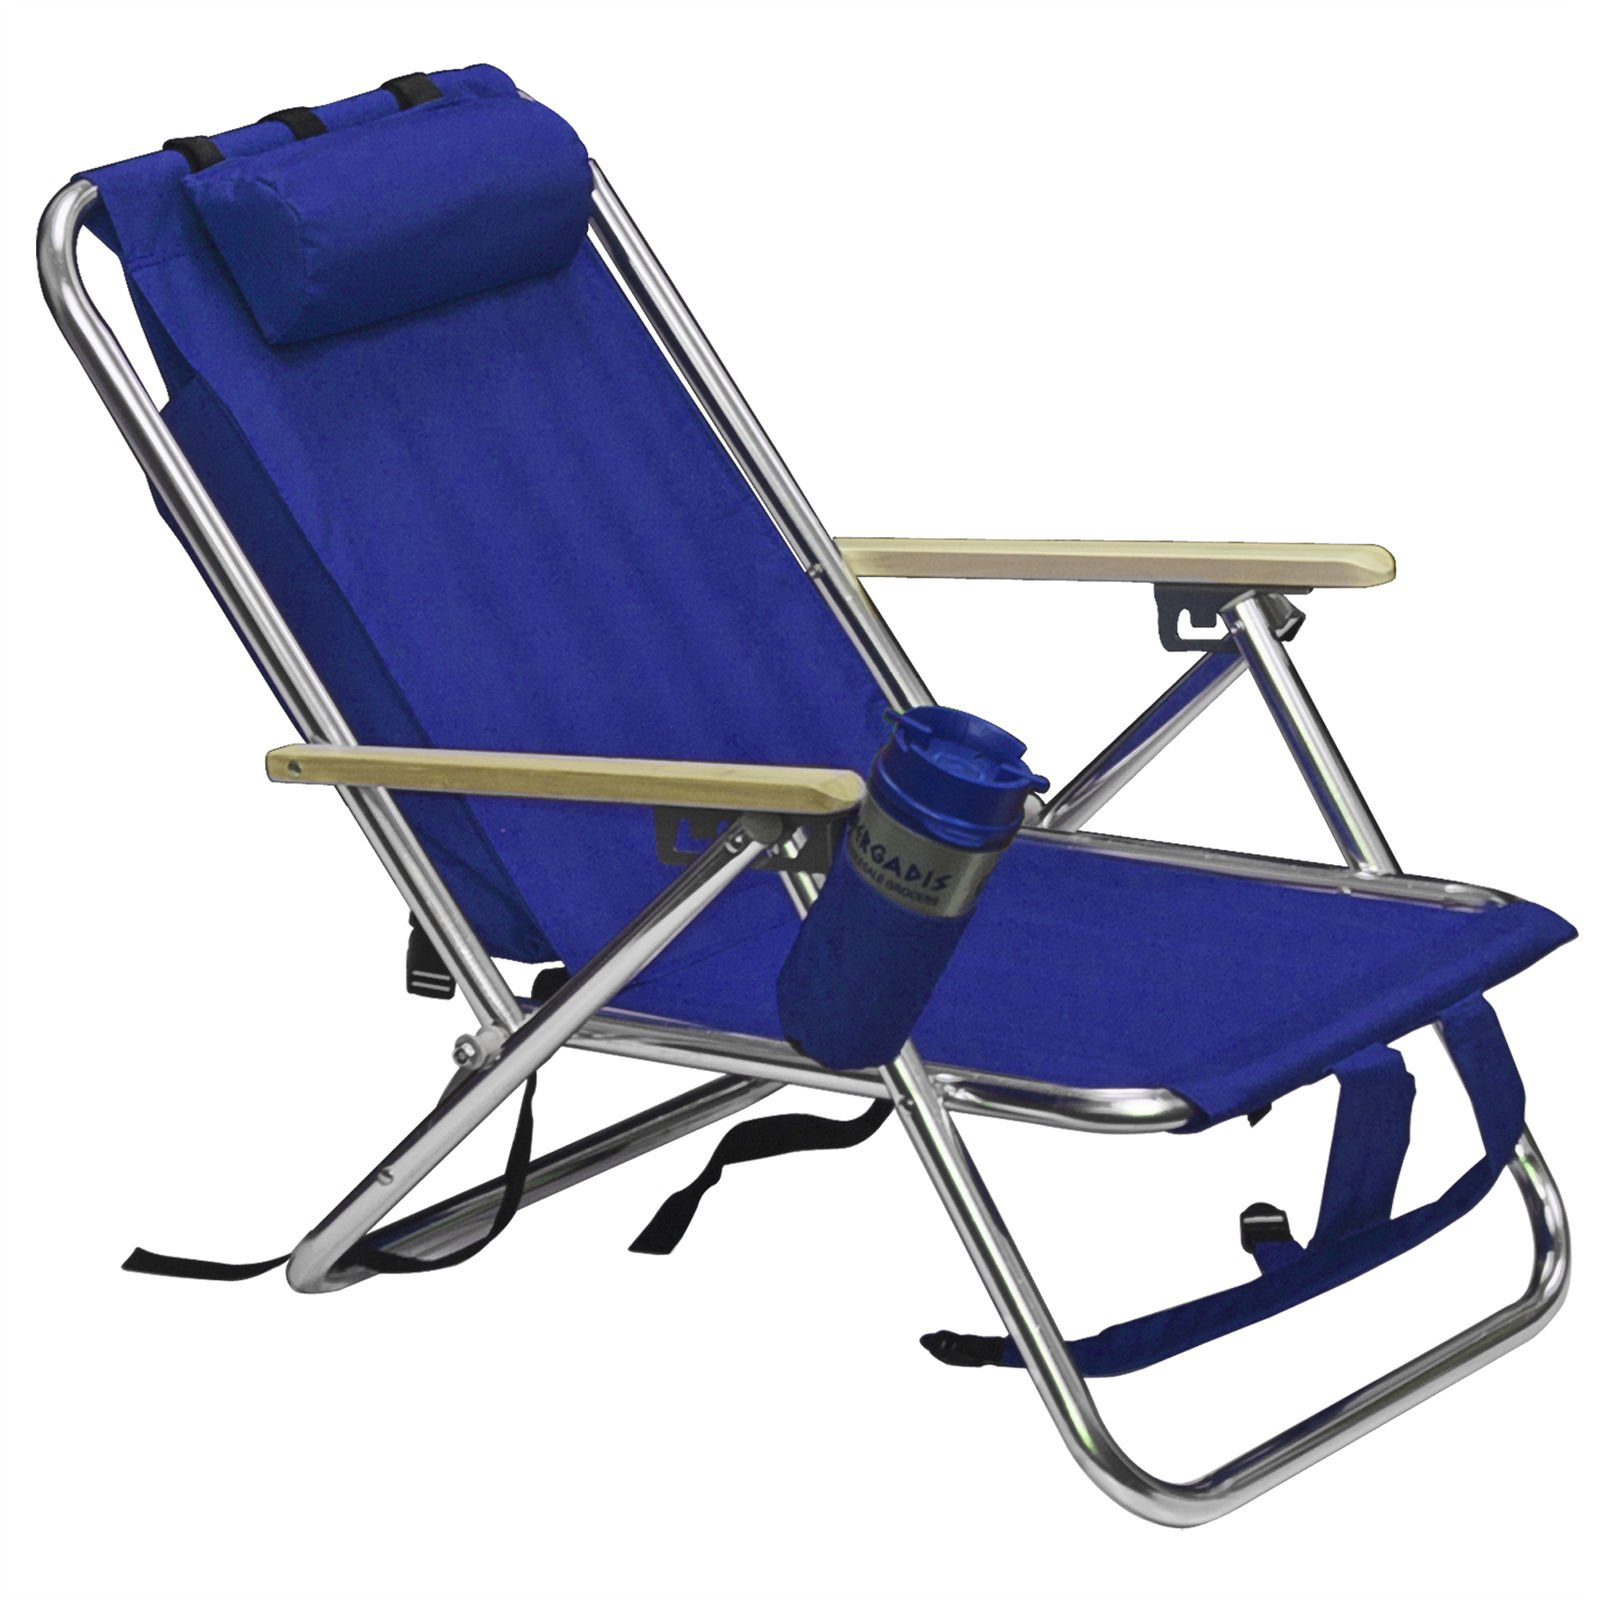 Picotech Backpack Beach Chair Blue Aluminum Powder-coated Frame 600D Polyester Fabric Hardwood Armrest Carrying Straps Heavy Duty Sturdy Durable 4-Position Recline Pillow Versatile Camping Concerts